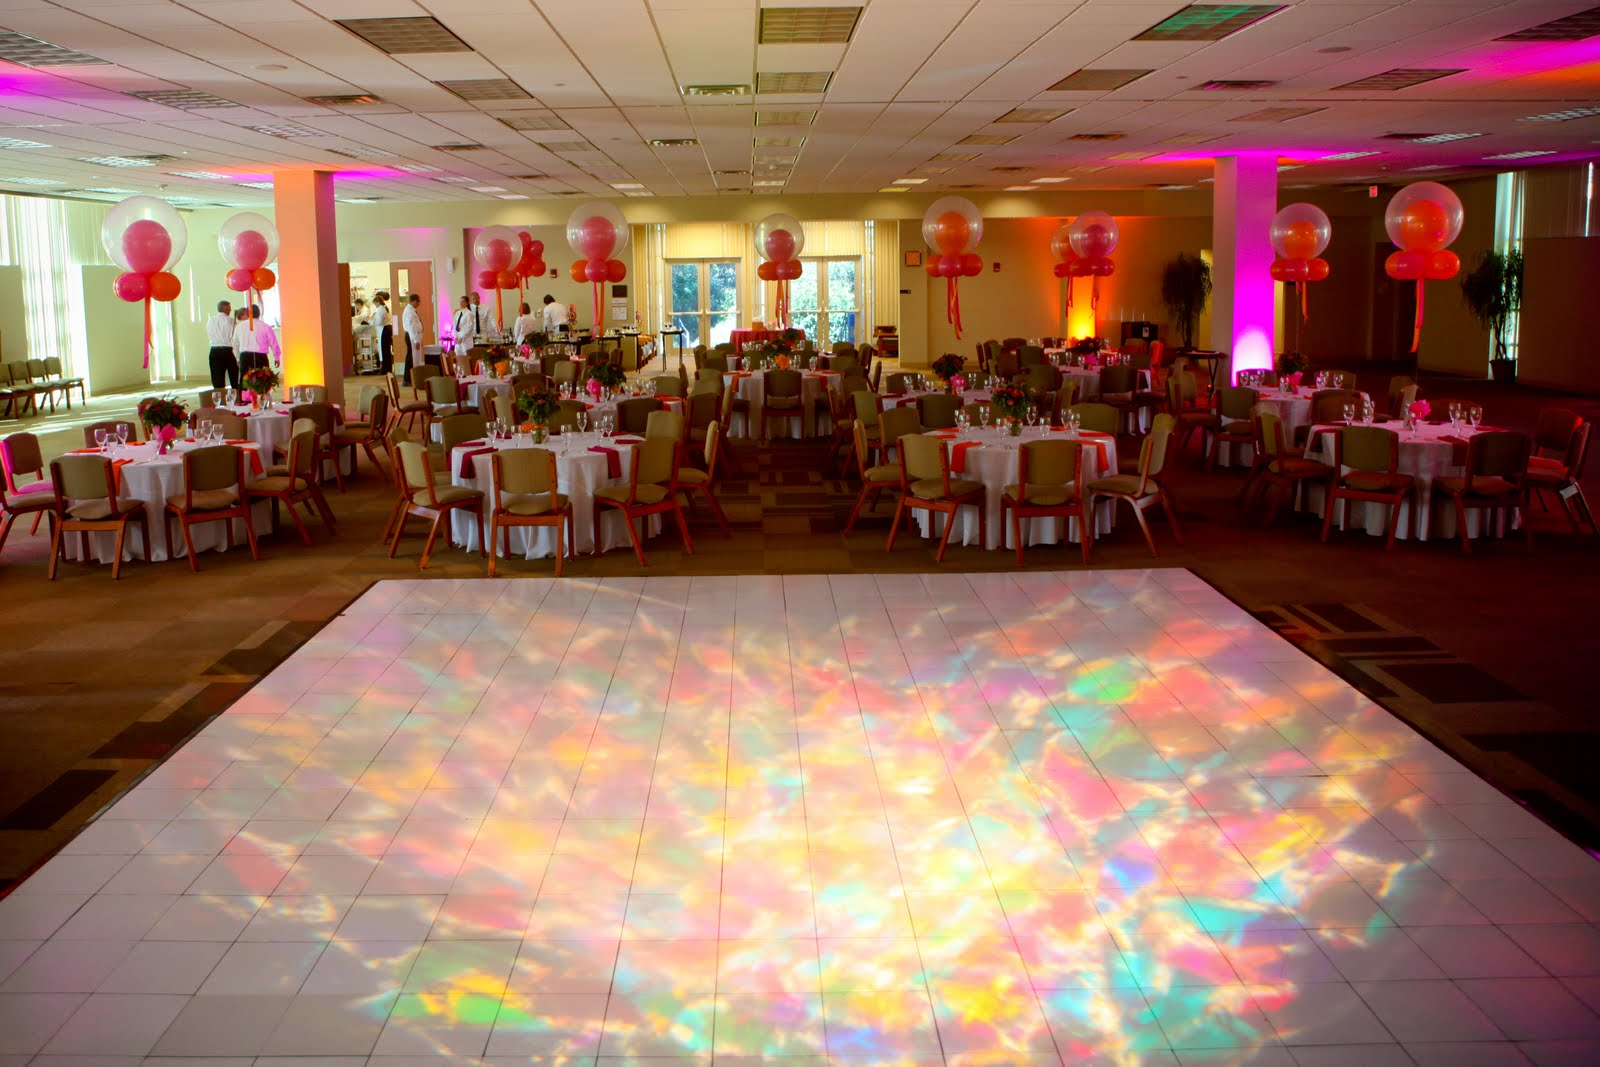 Dancefloor size chart premiere events for 10 x 9 square feet